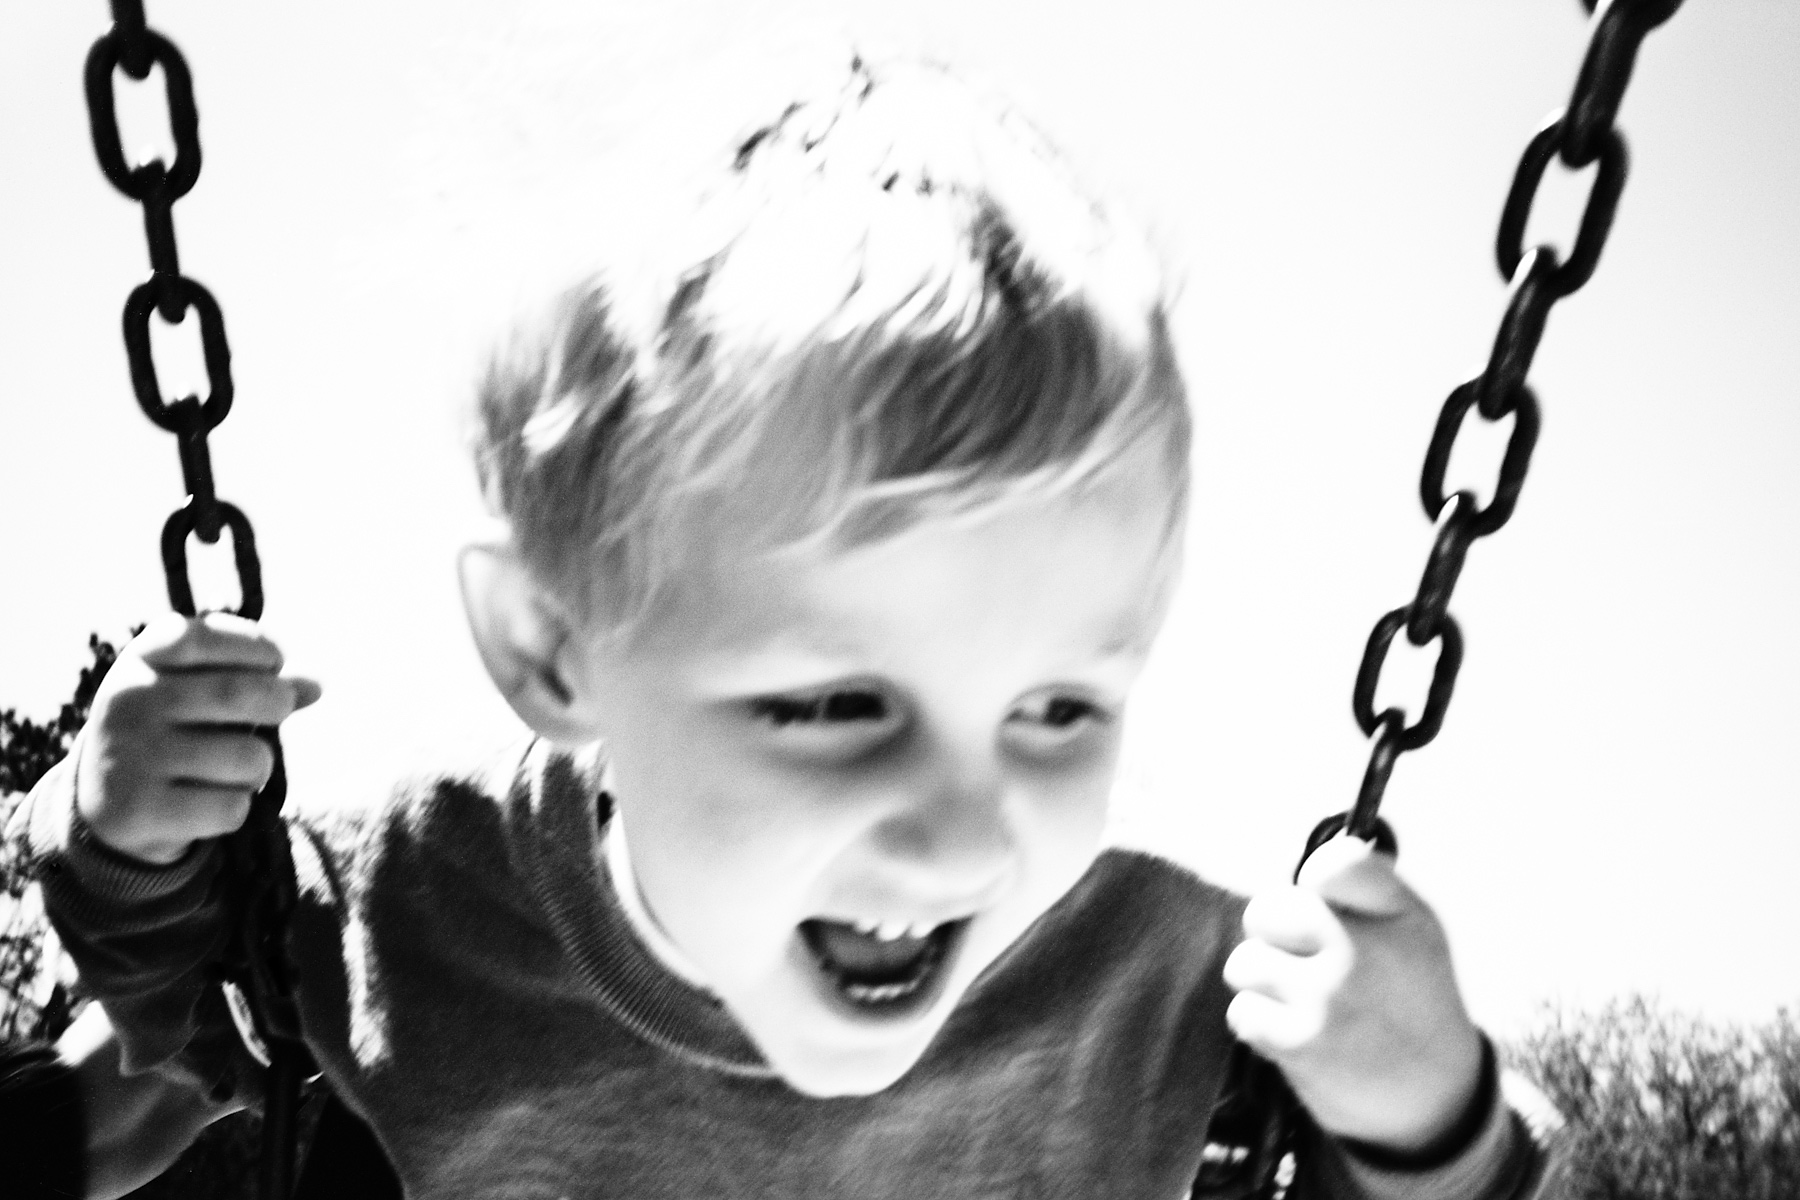 black and white photograph of child on swing in motion